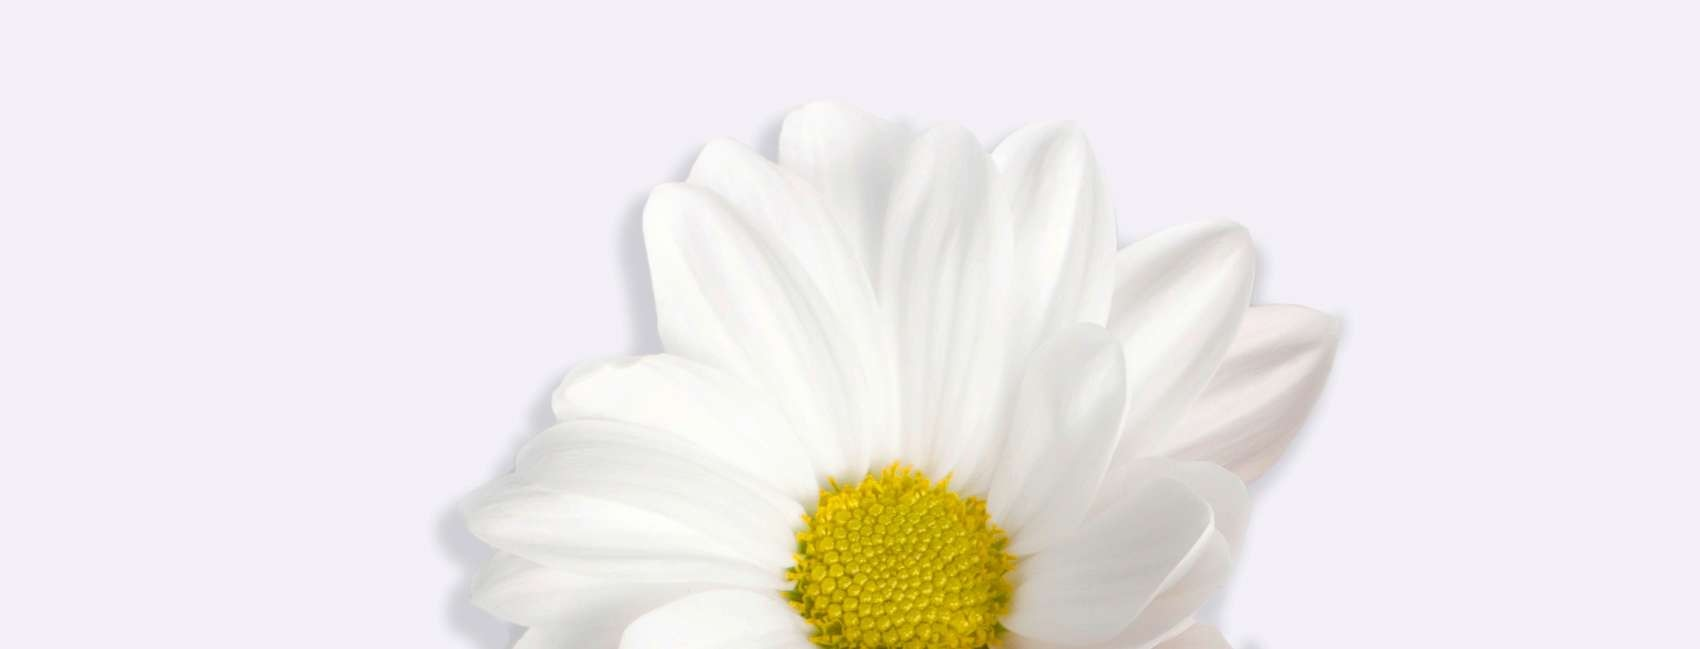 White chamomile flower on grey background